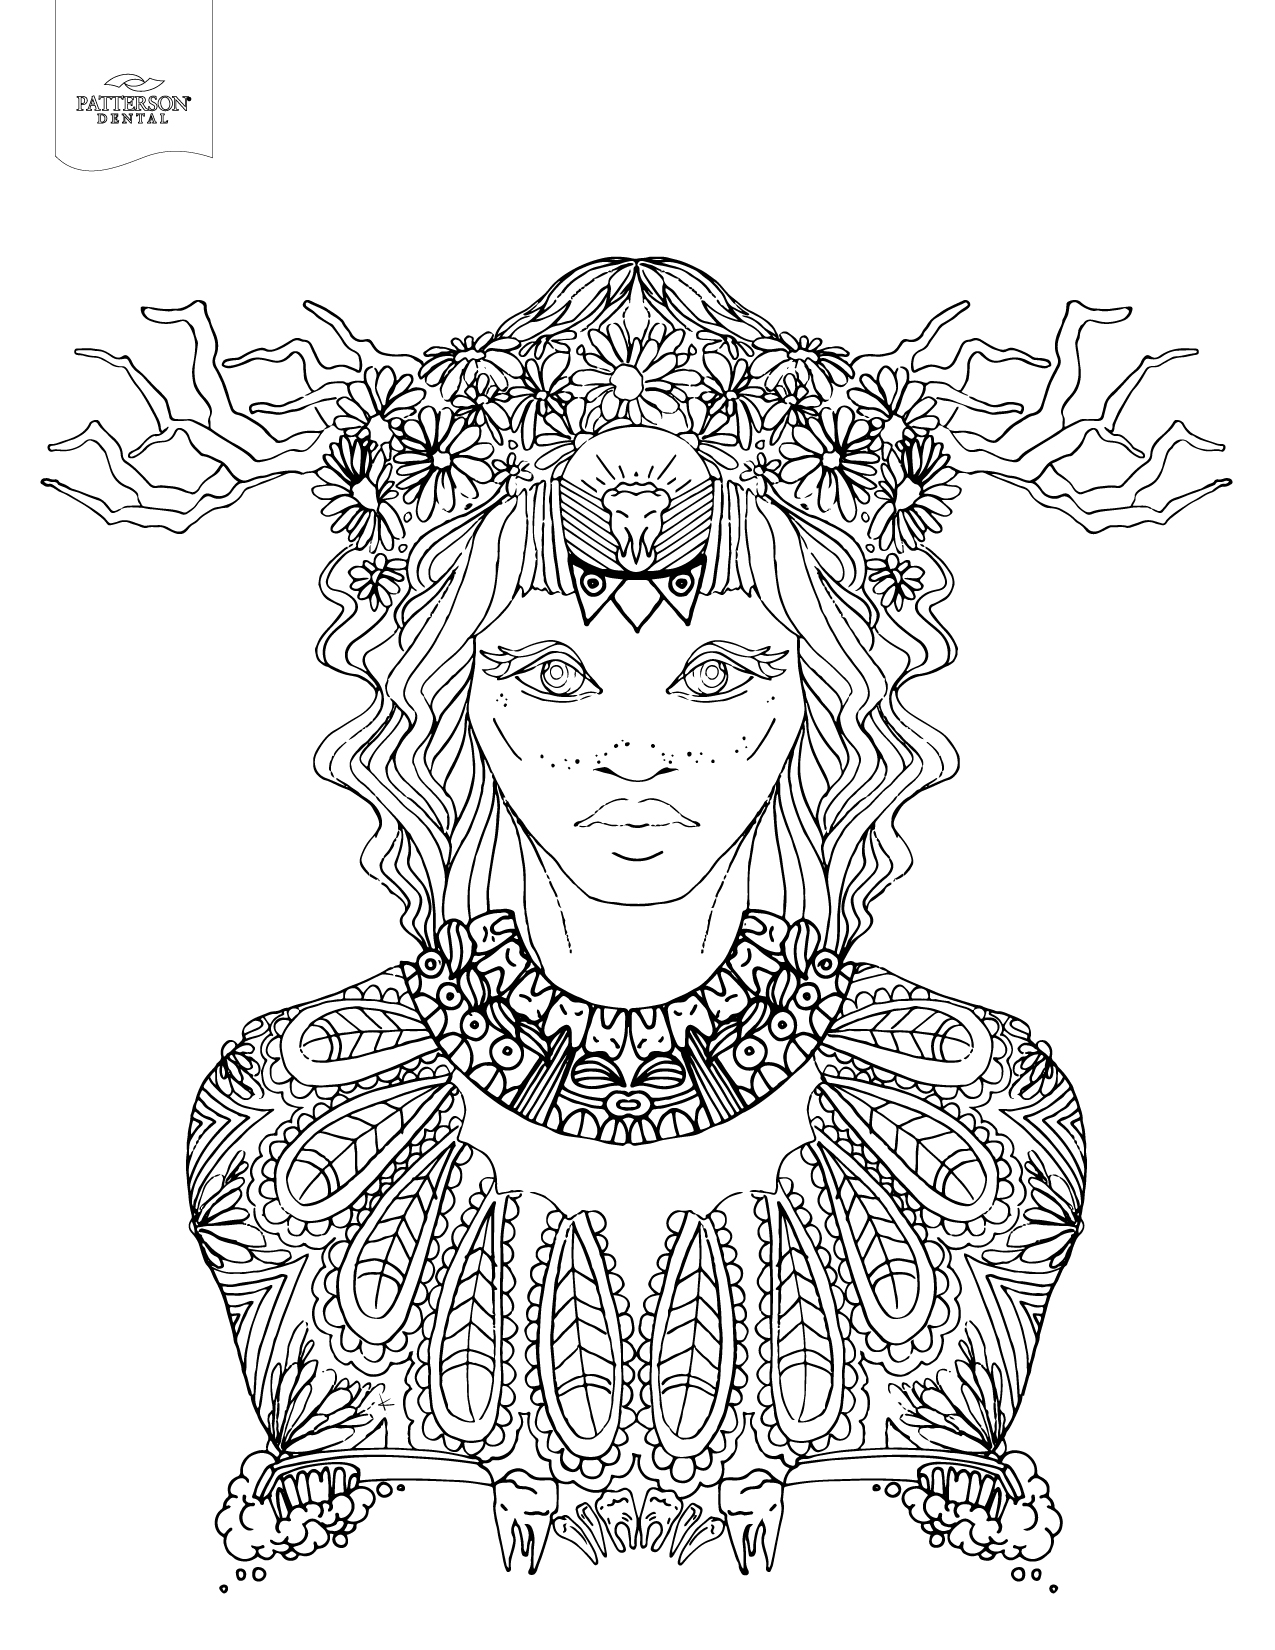 full size coloring pages 10 toothy adult coloring pages printable off the cusp pages coloring size full